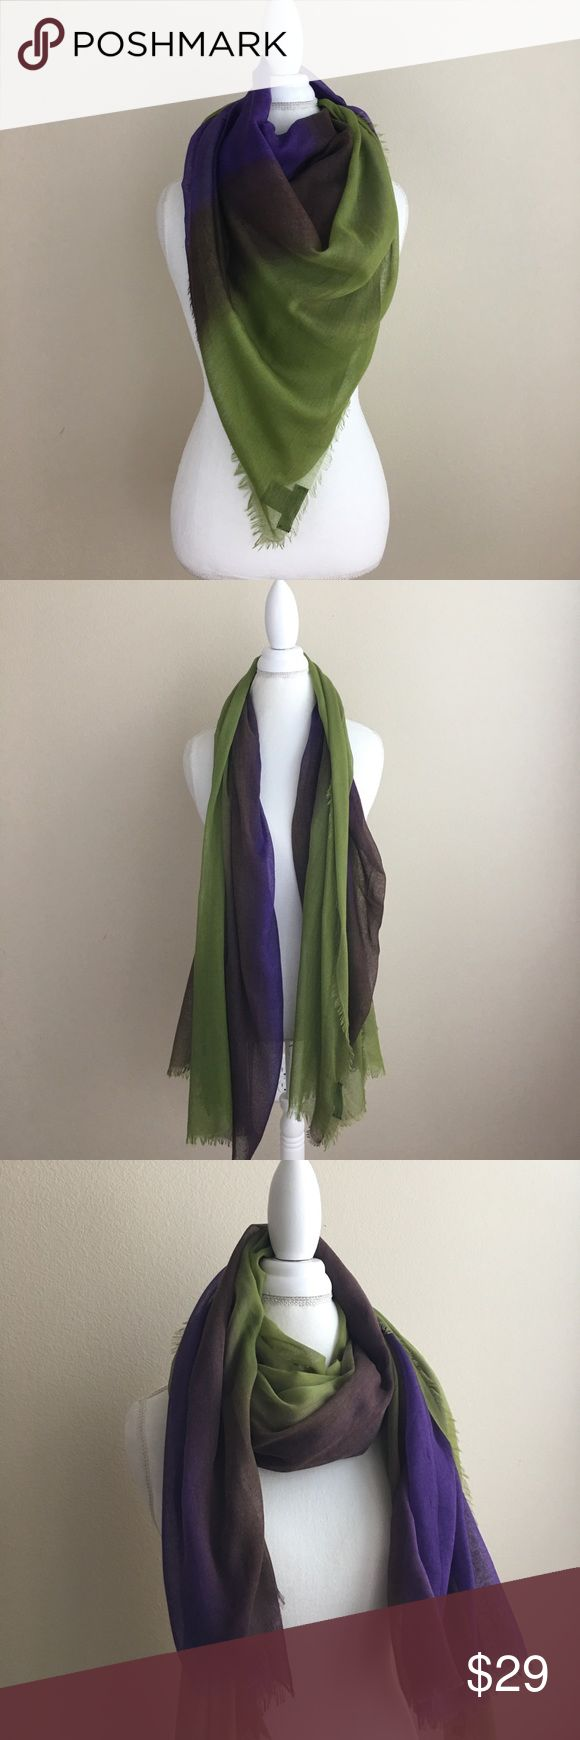 """Urban Outfitters Deena & Ozzy Blanket Scarf Urban Outfitters brand Deena & Ozzy blanket scarf. Purple, green and brown. Frayed edges. 100% polyester. Hand wash. L 63"""" x W 43"""". Measurements are approximate. In excellent condition. Perfect for fall! Urban Outfitters Accessories Scarves & Wraps"""